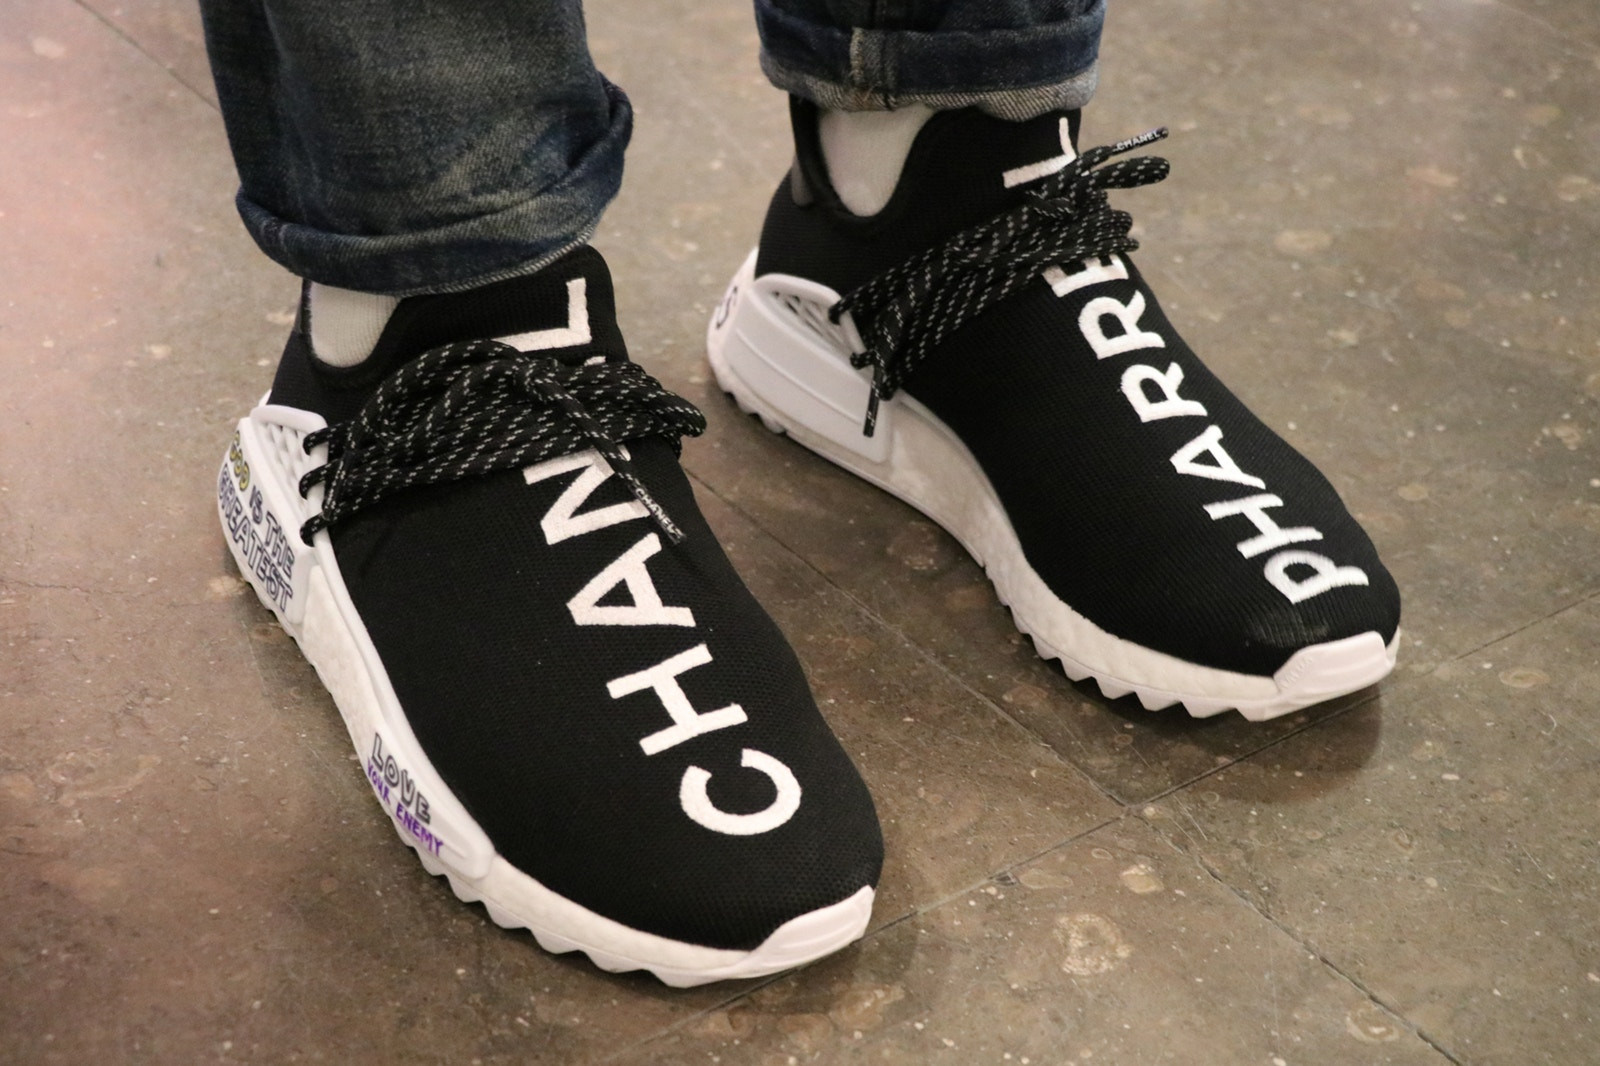 Chanel x adidas Originals Pharrell Williams NMD Footwear colette Exclusive Collection Collaboration